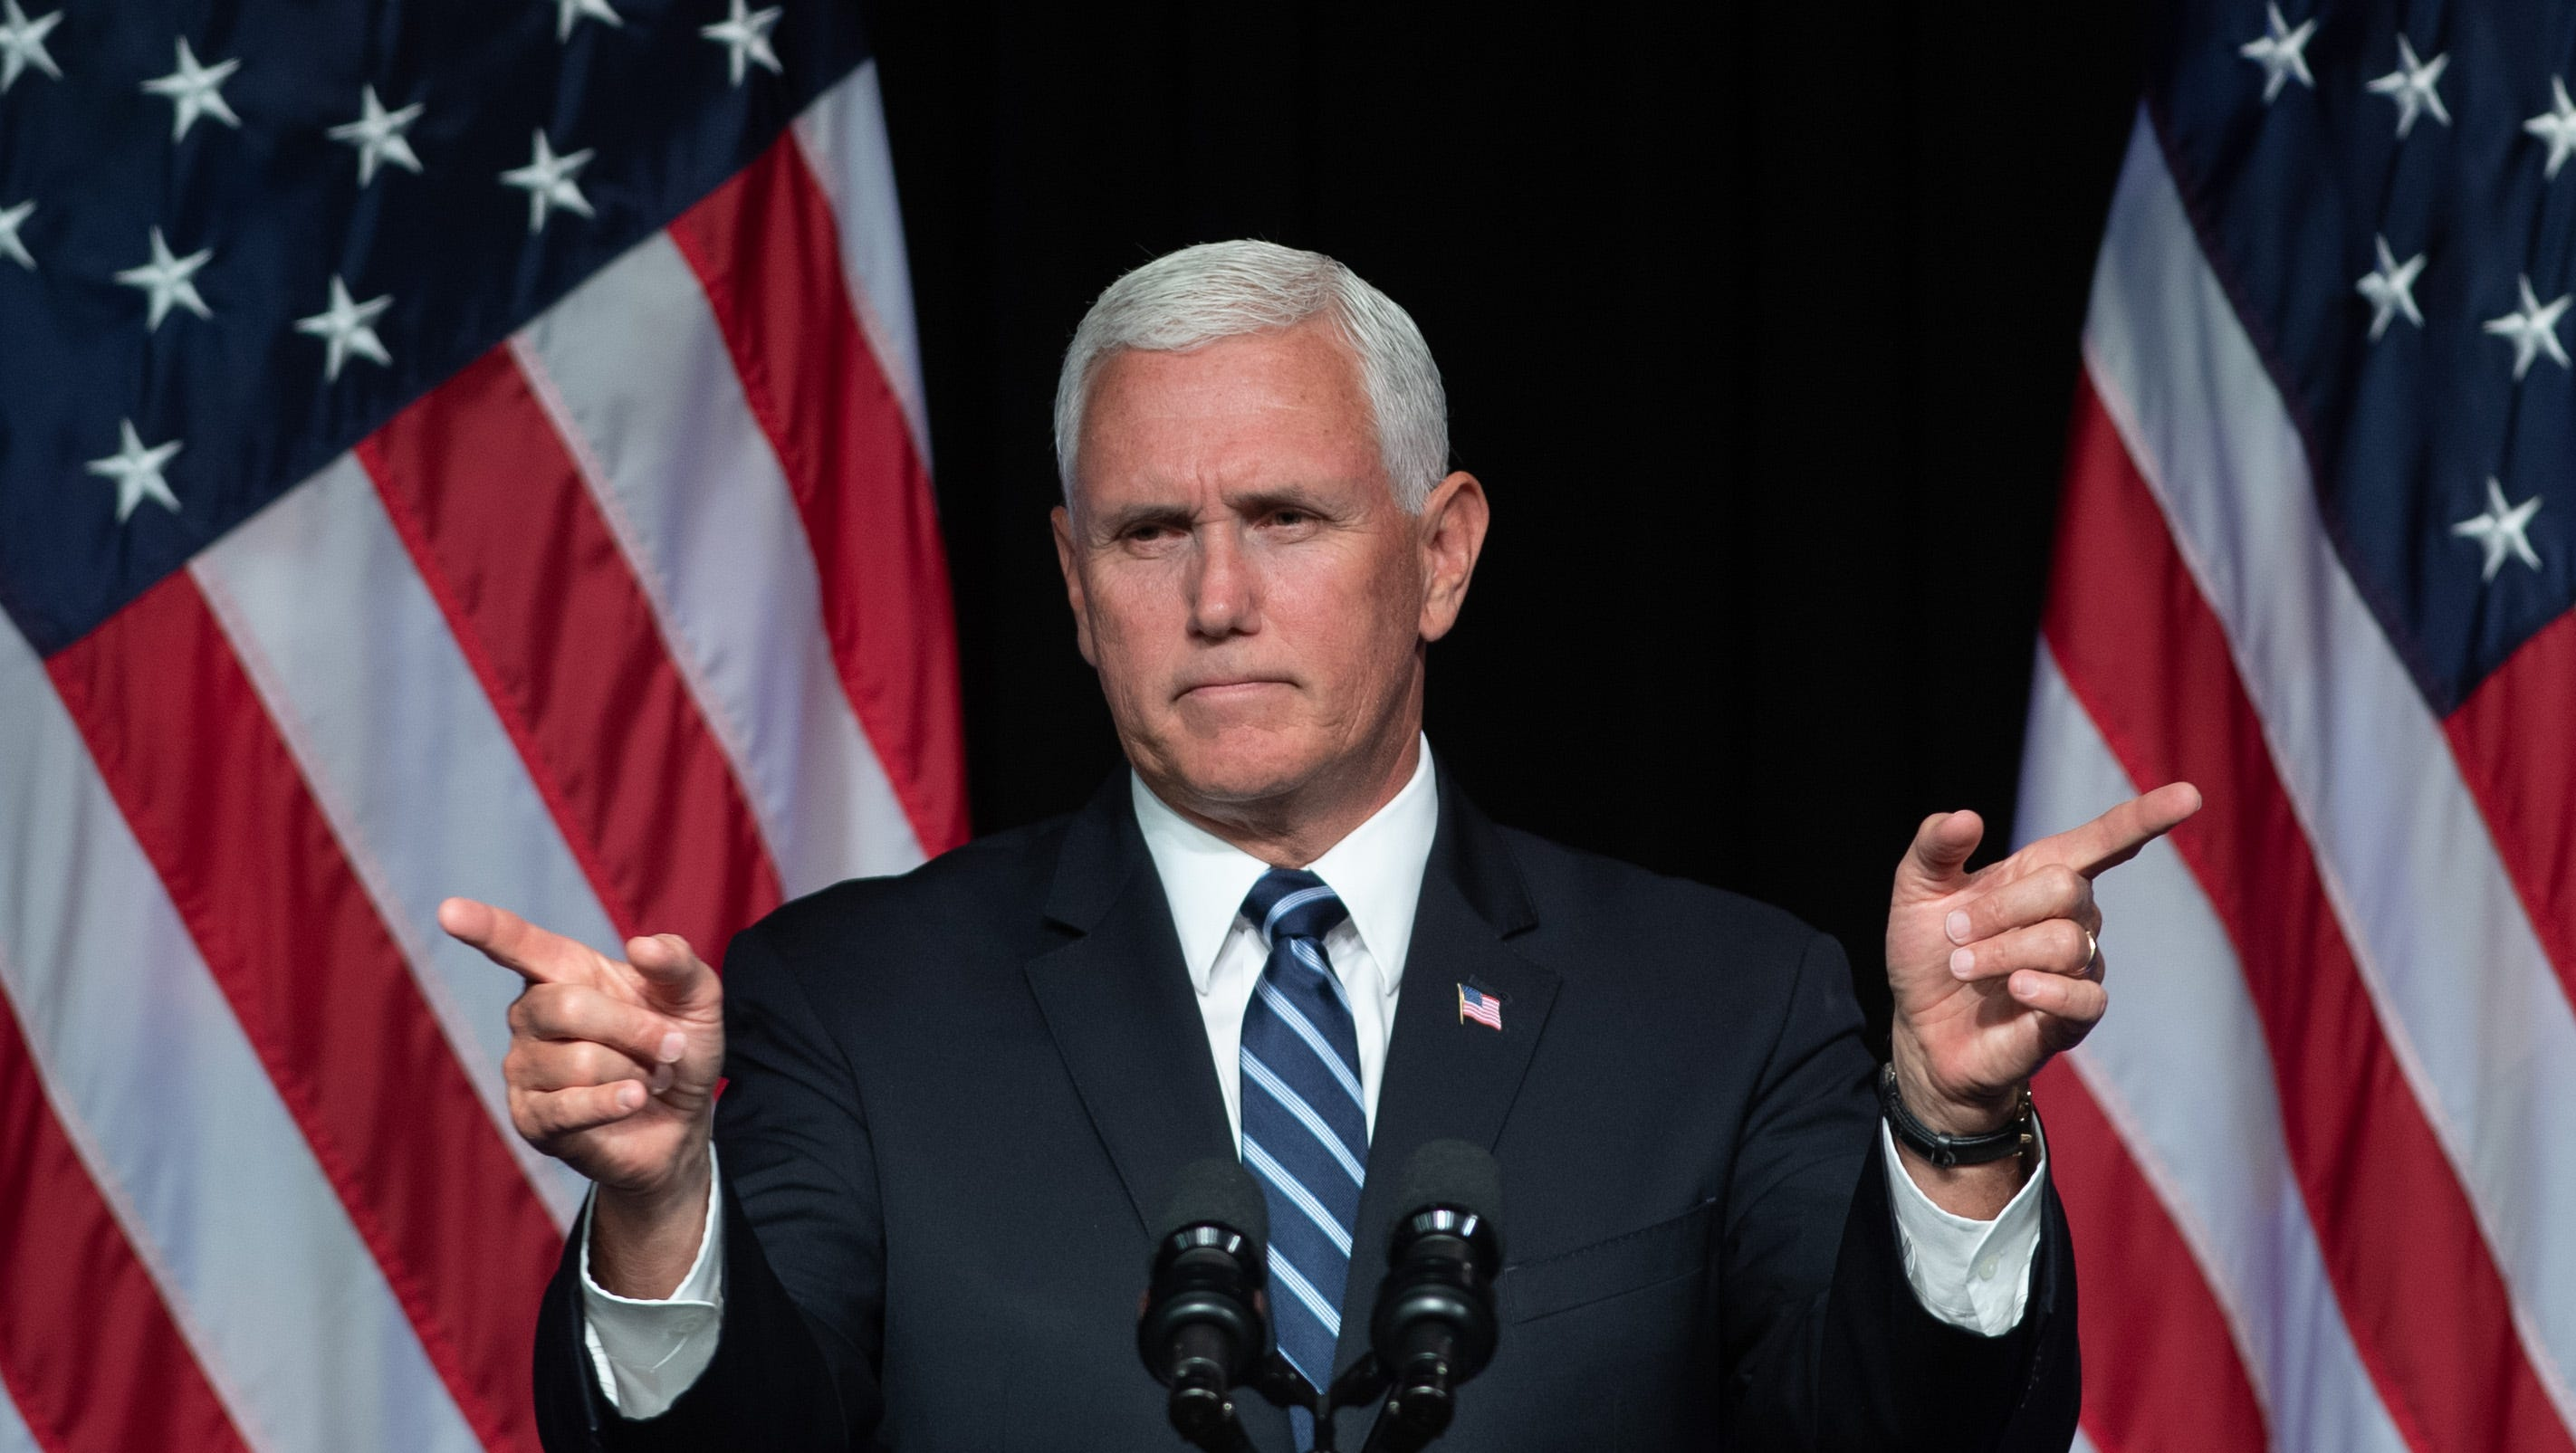 The Onion explains how to satirize Vice President Mike Pence